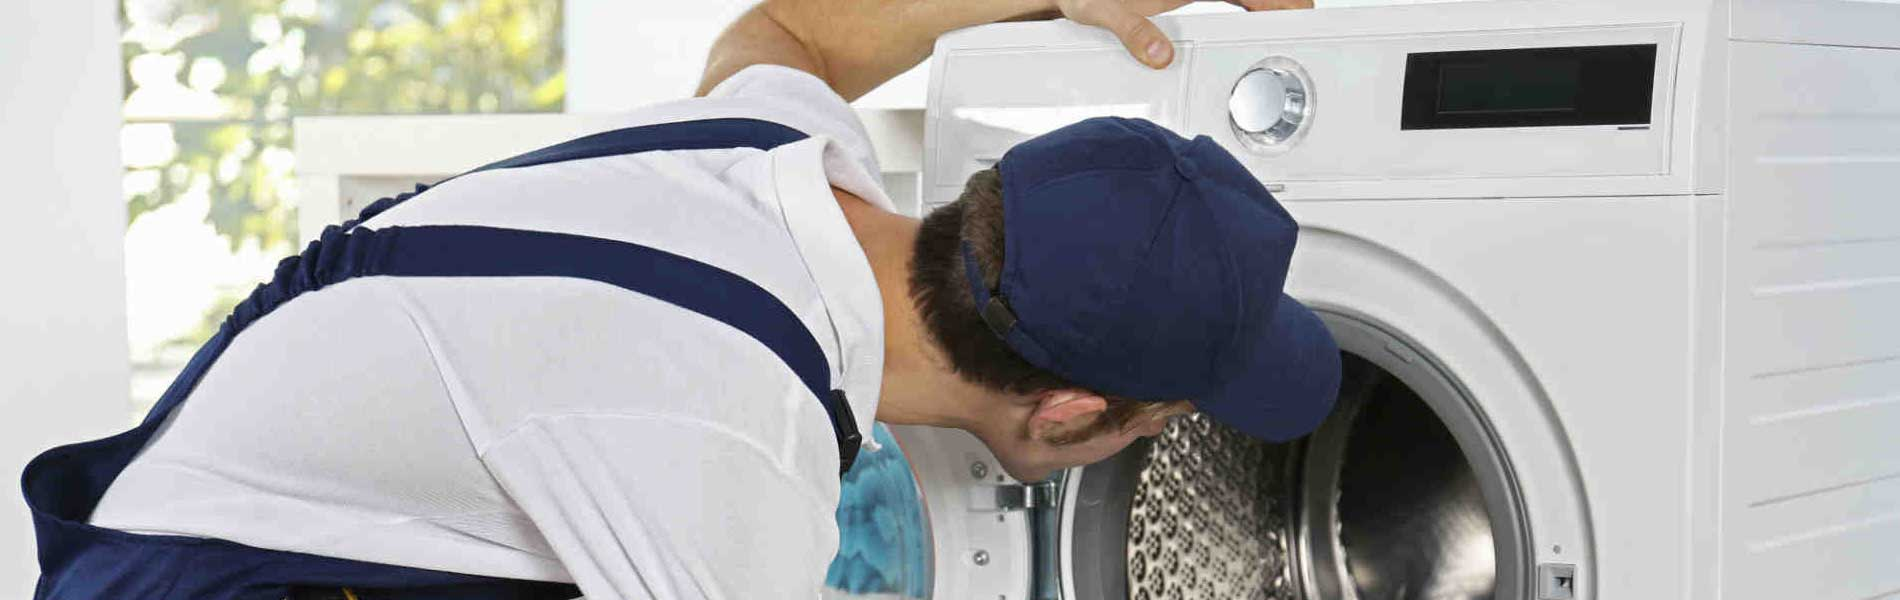 Godrej Washing Machine Mechanic in Ennore